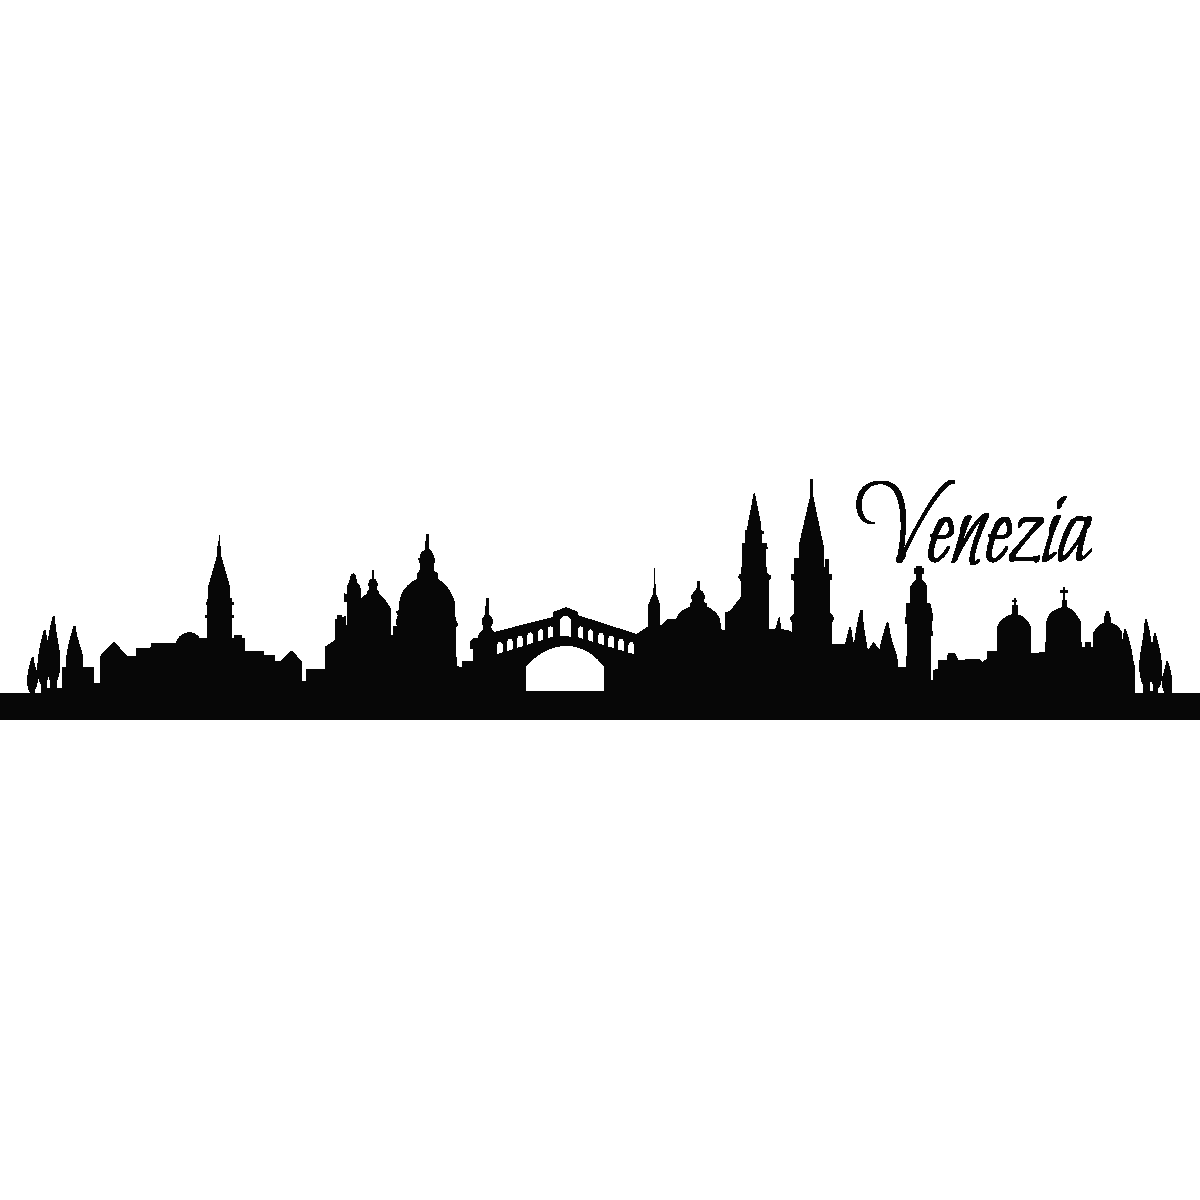 City wall decals wall decal venice skyline 2 ambiance sticker com